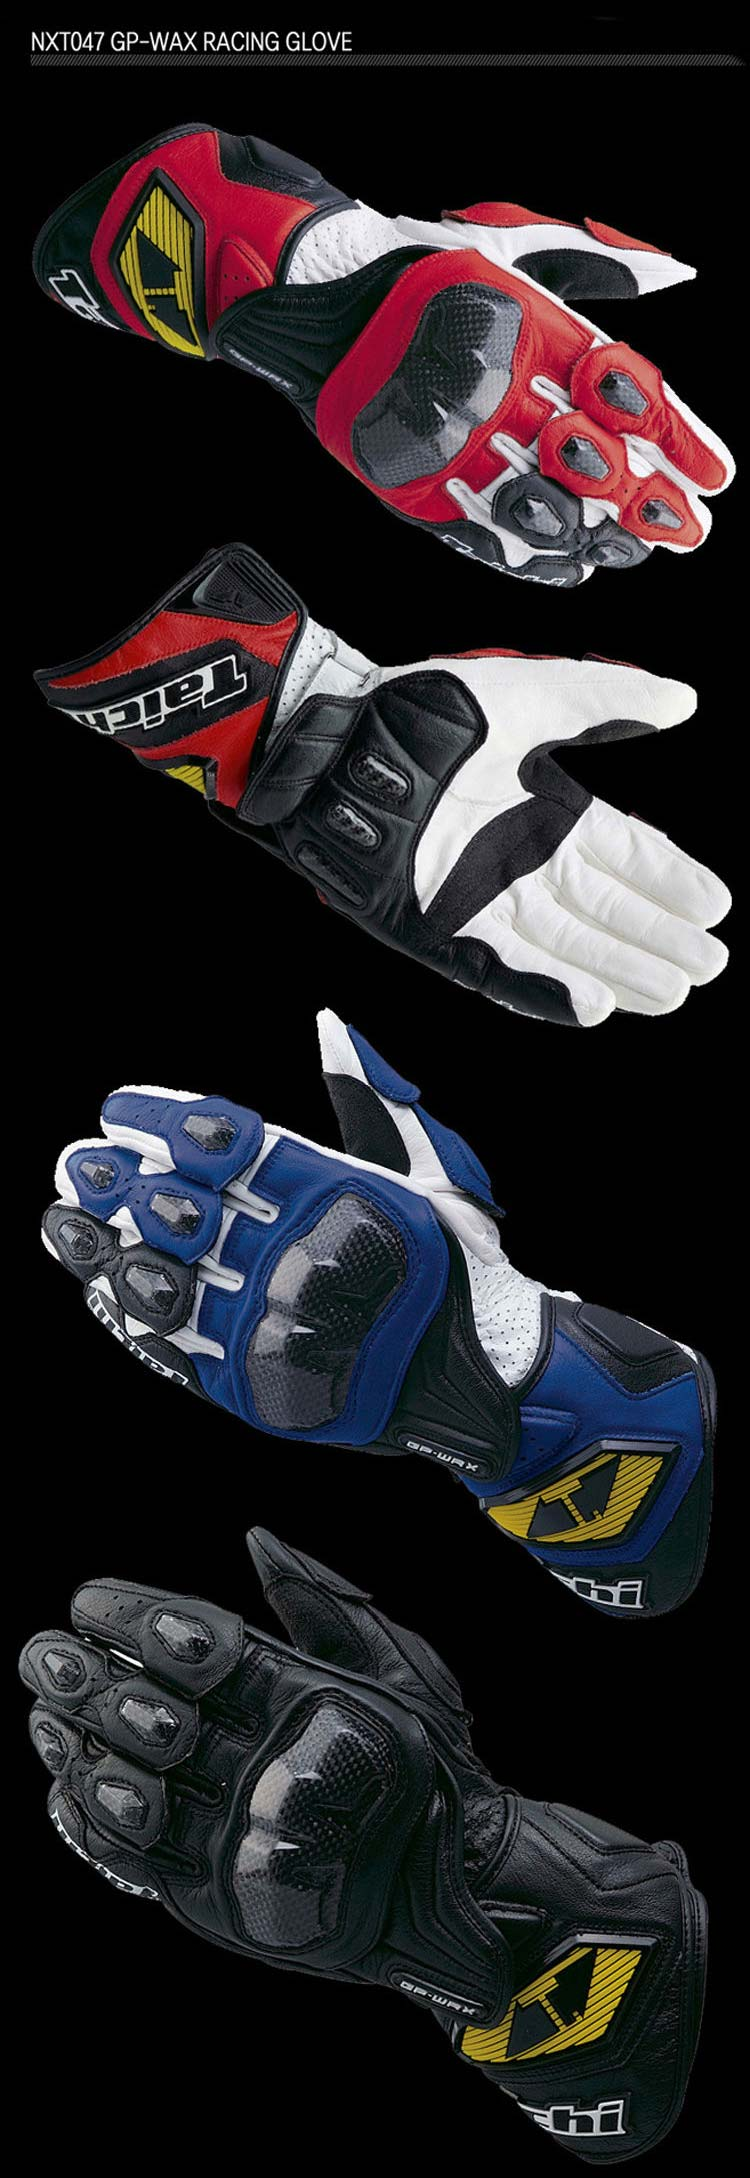 Japanese leather motorcycle gloves - Rs Taichi Nxt 047 Gp Wrx Racing Gloves